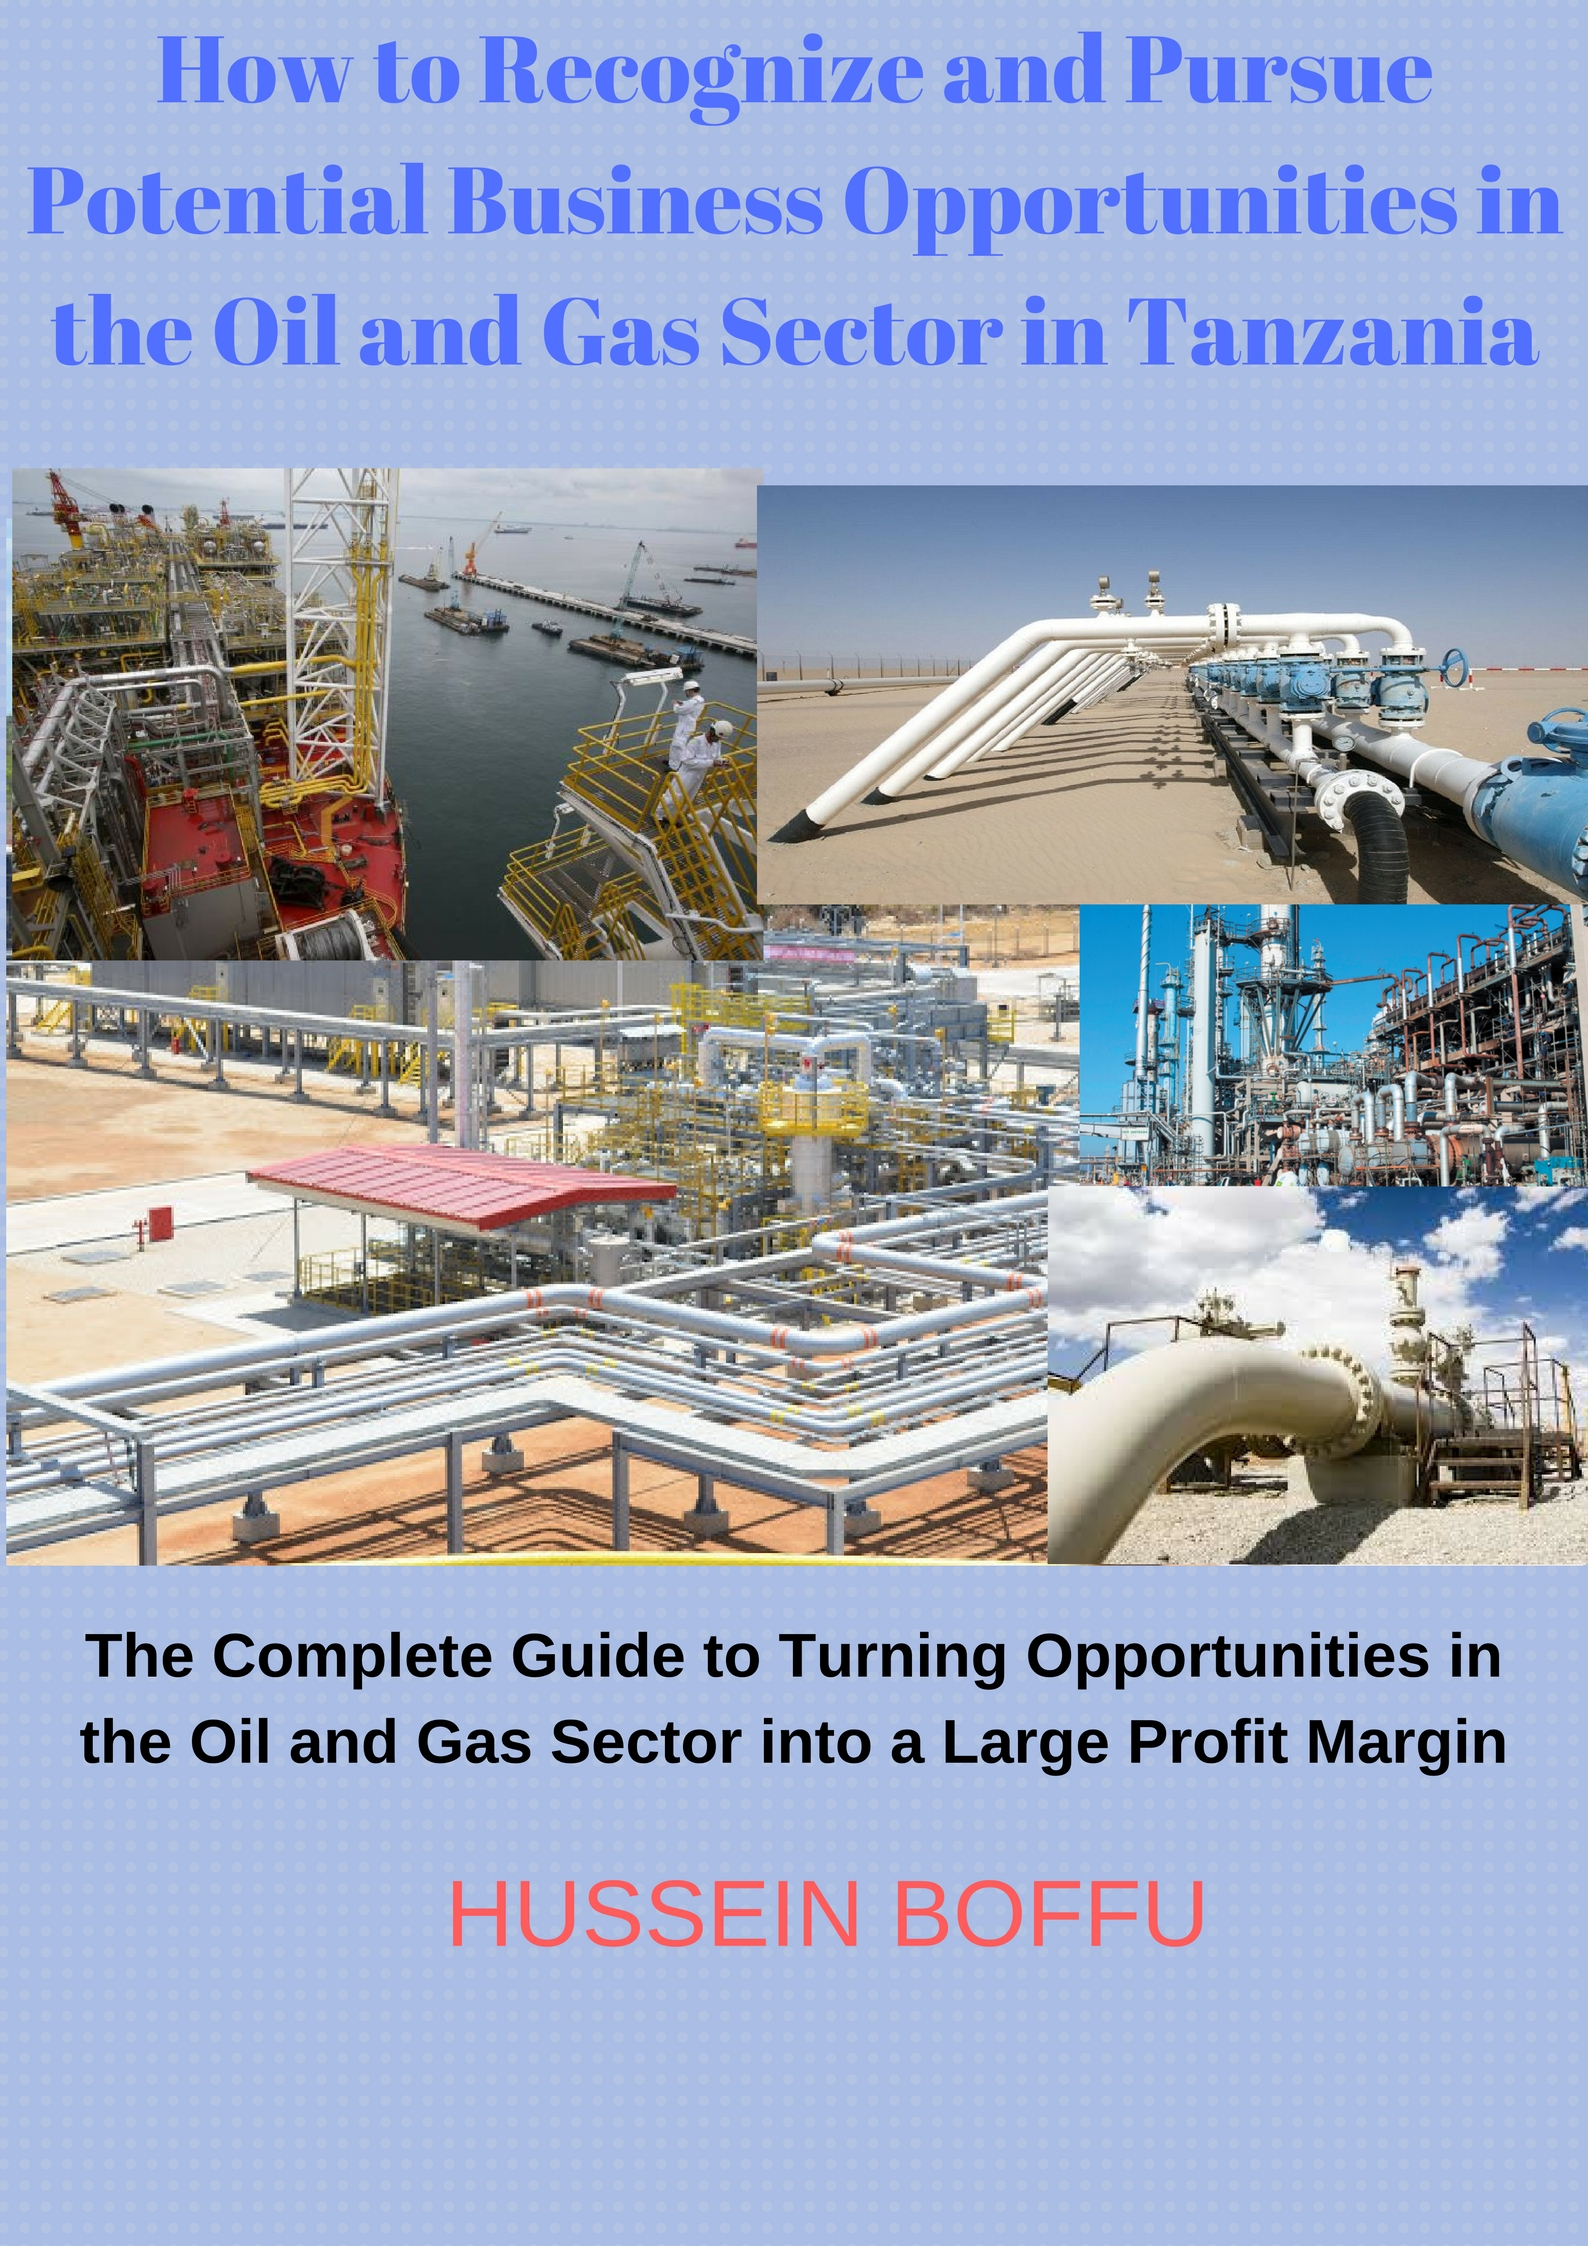 How to Recognize and Pursue Potential Business Opportunities in the Oil and Gas Sector in Tanzania (2)